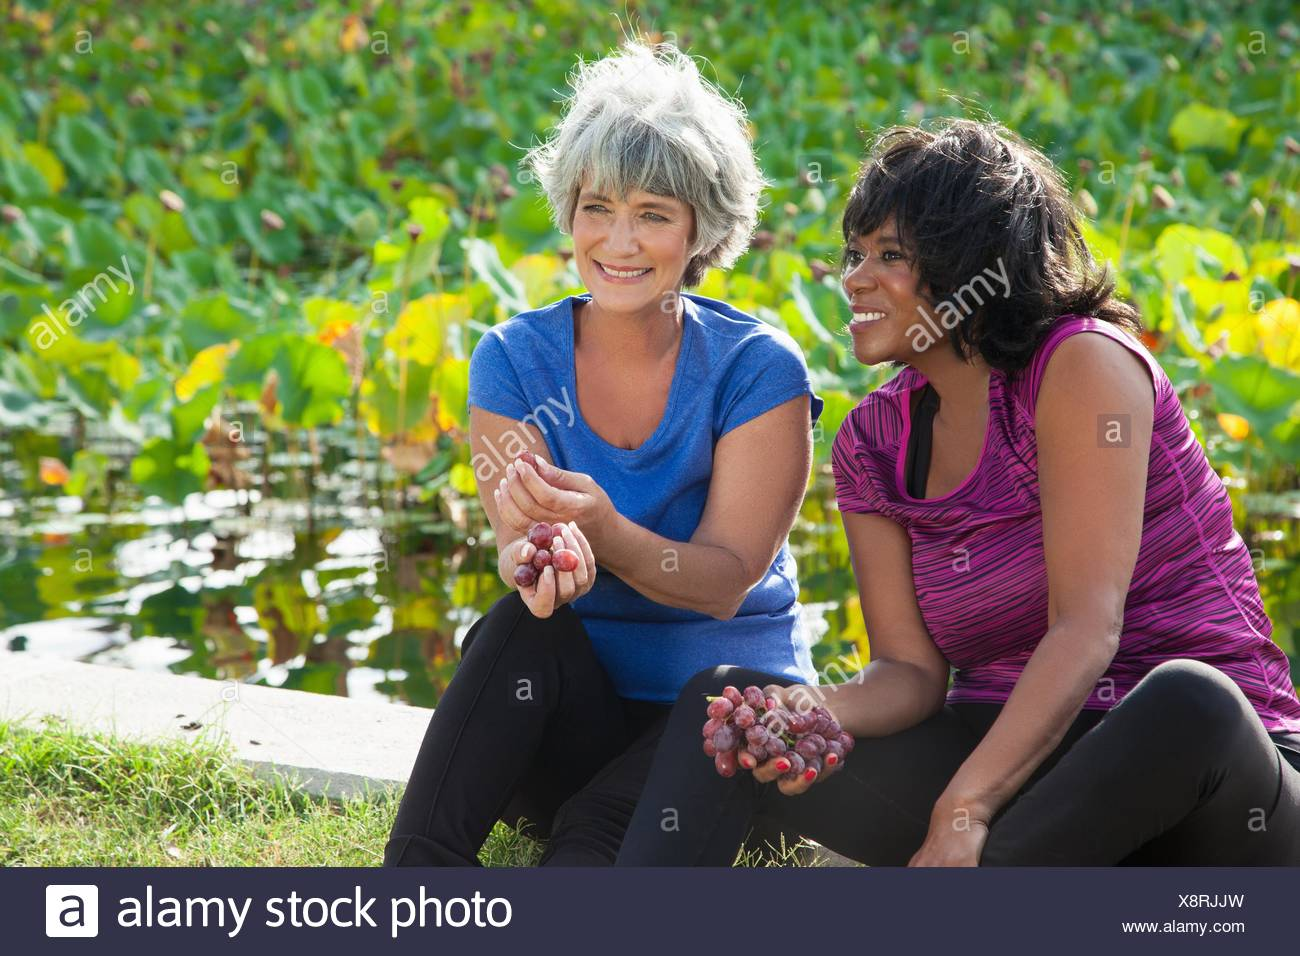 Mature female friends sitting in park, eating grapes - Stock Image